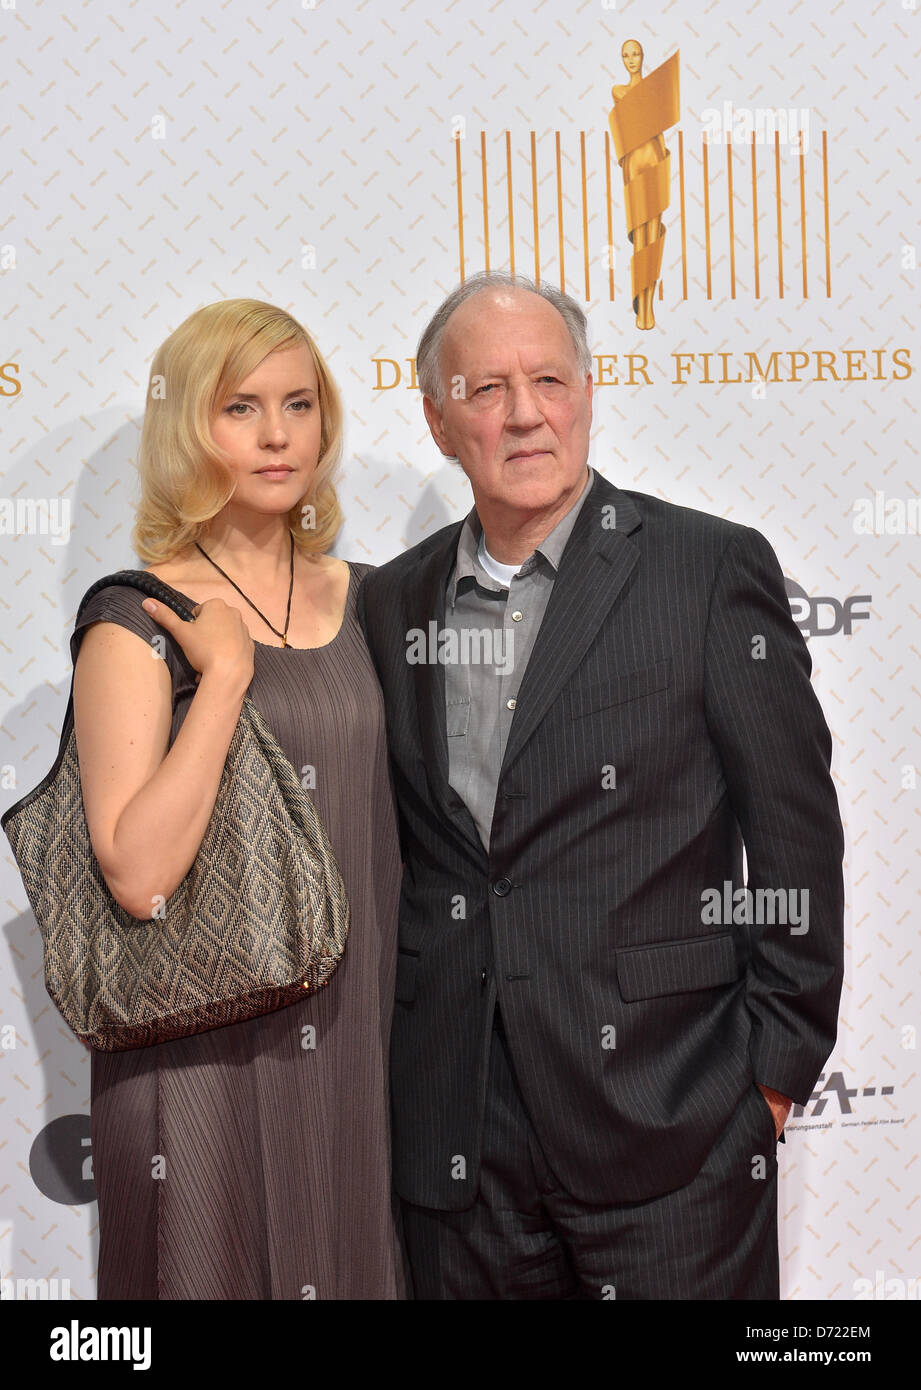 Director Werner Herzog and his wife Lena Herzog arrive to ...